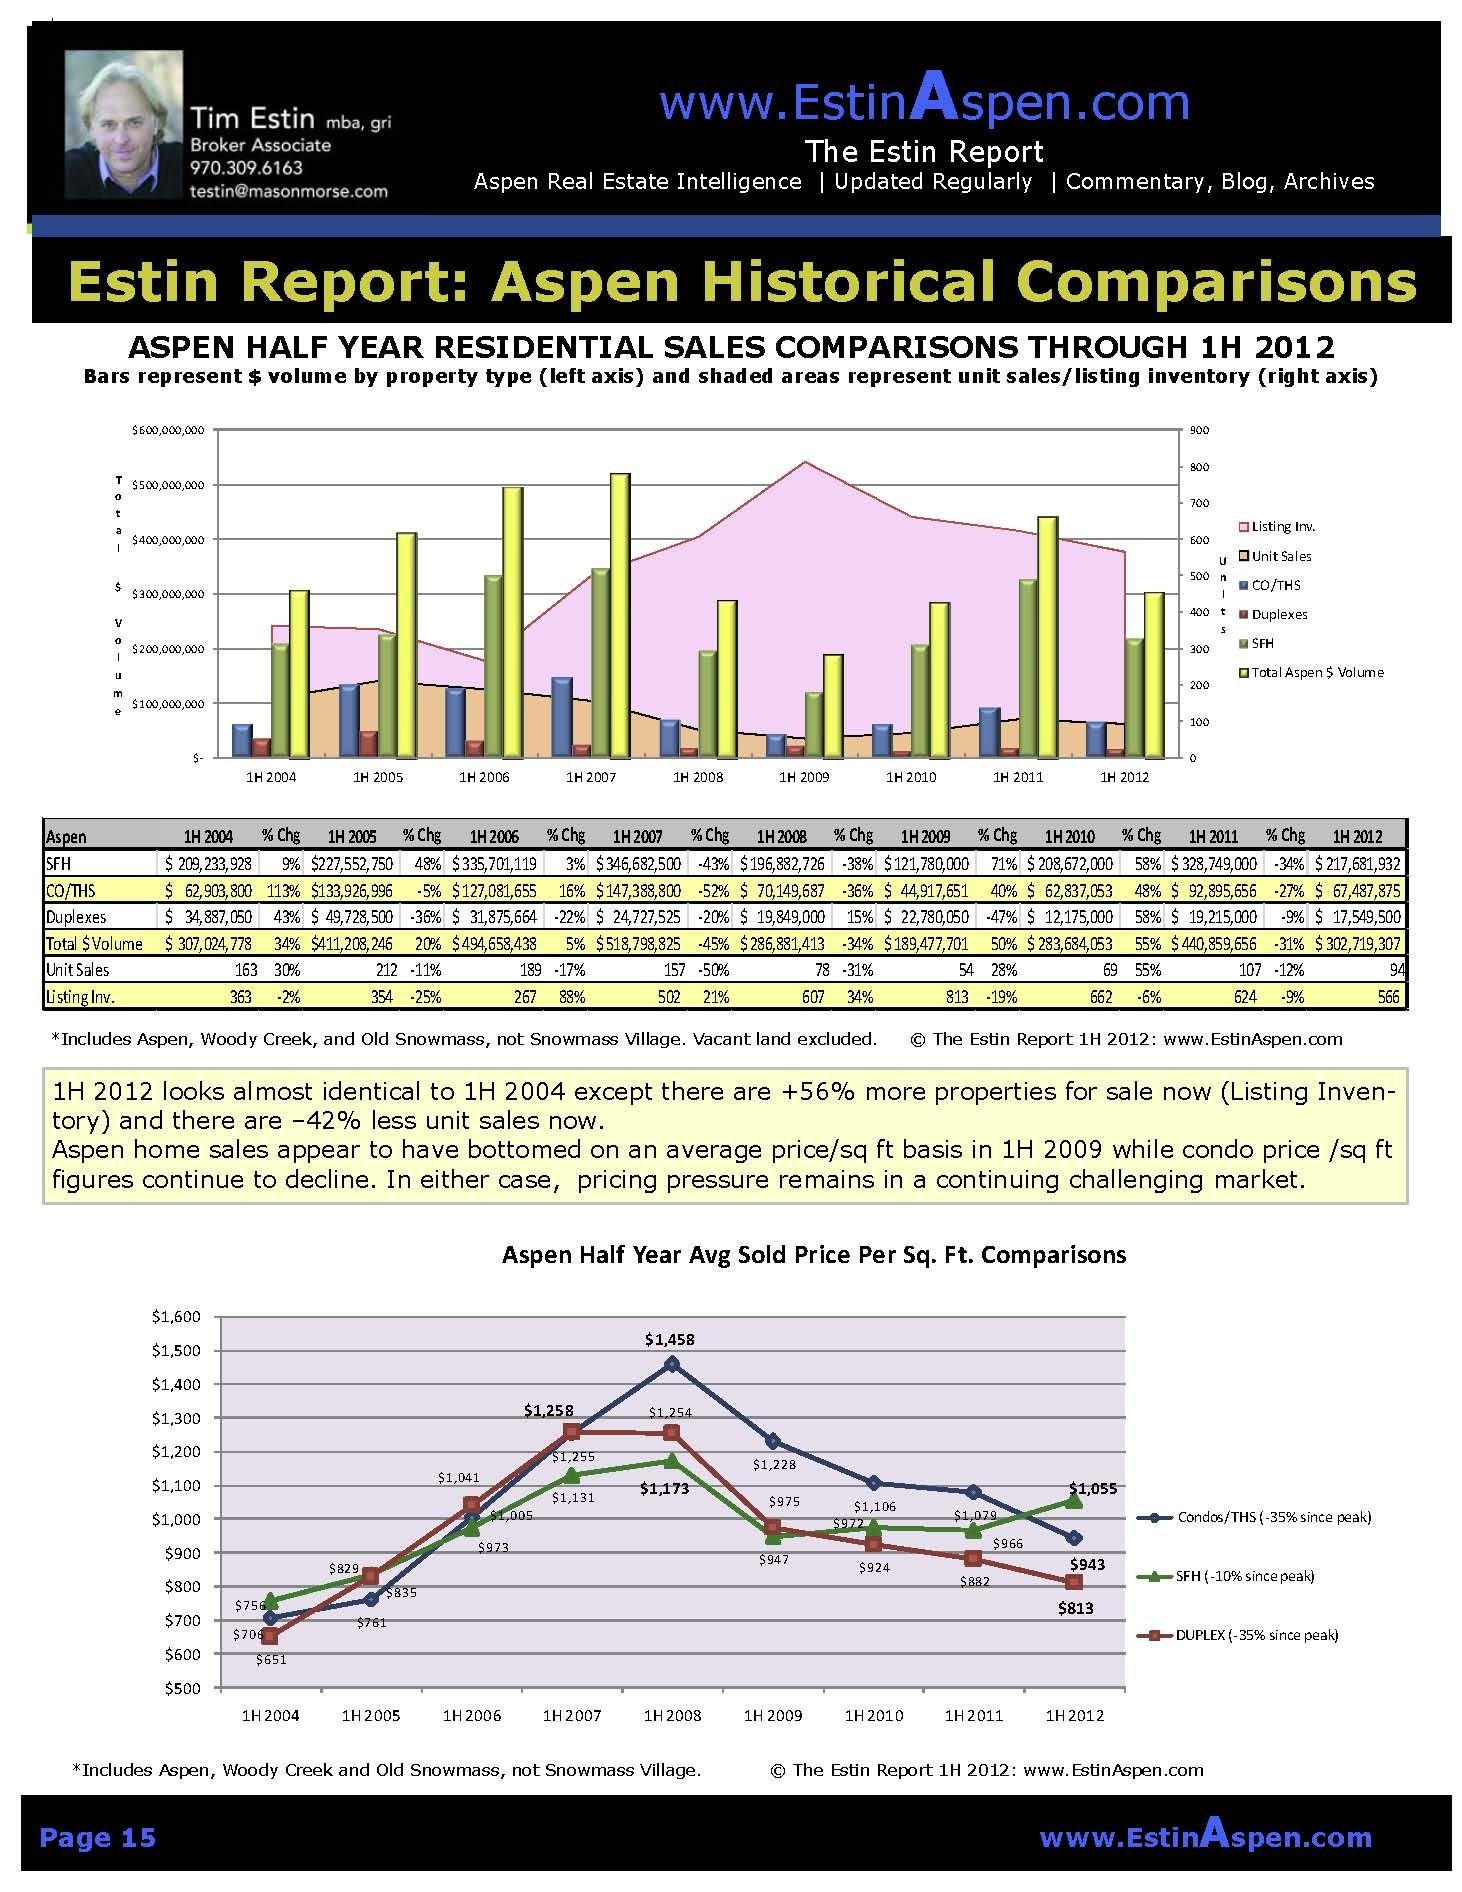 The Estin Report: Mid-Year 2012 – 2nd Quarter/1st Half State of the Aspen Market Image